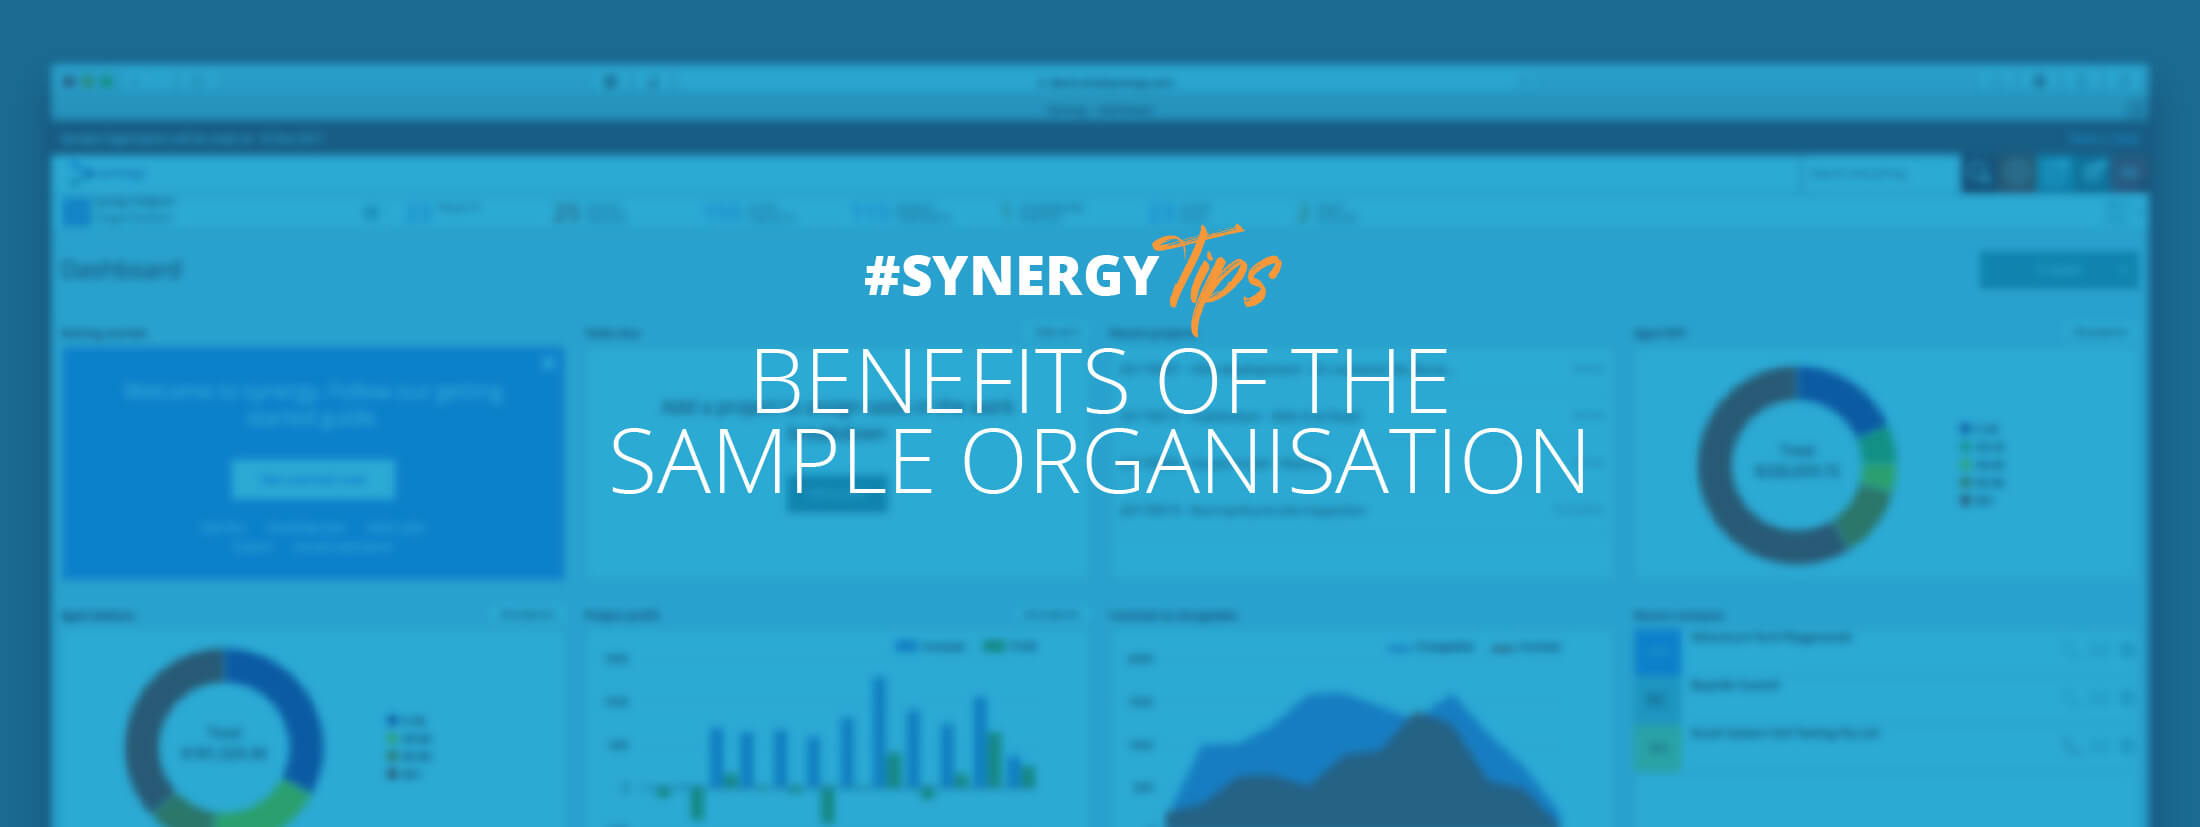 Benefit from using the Synergy sample organisation.